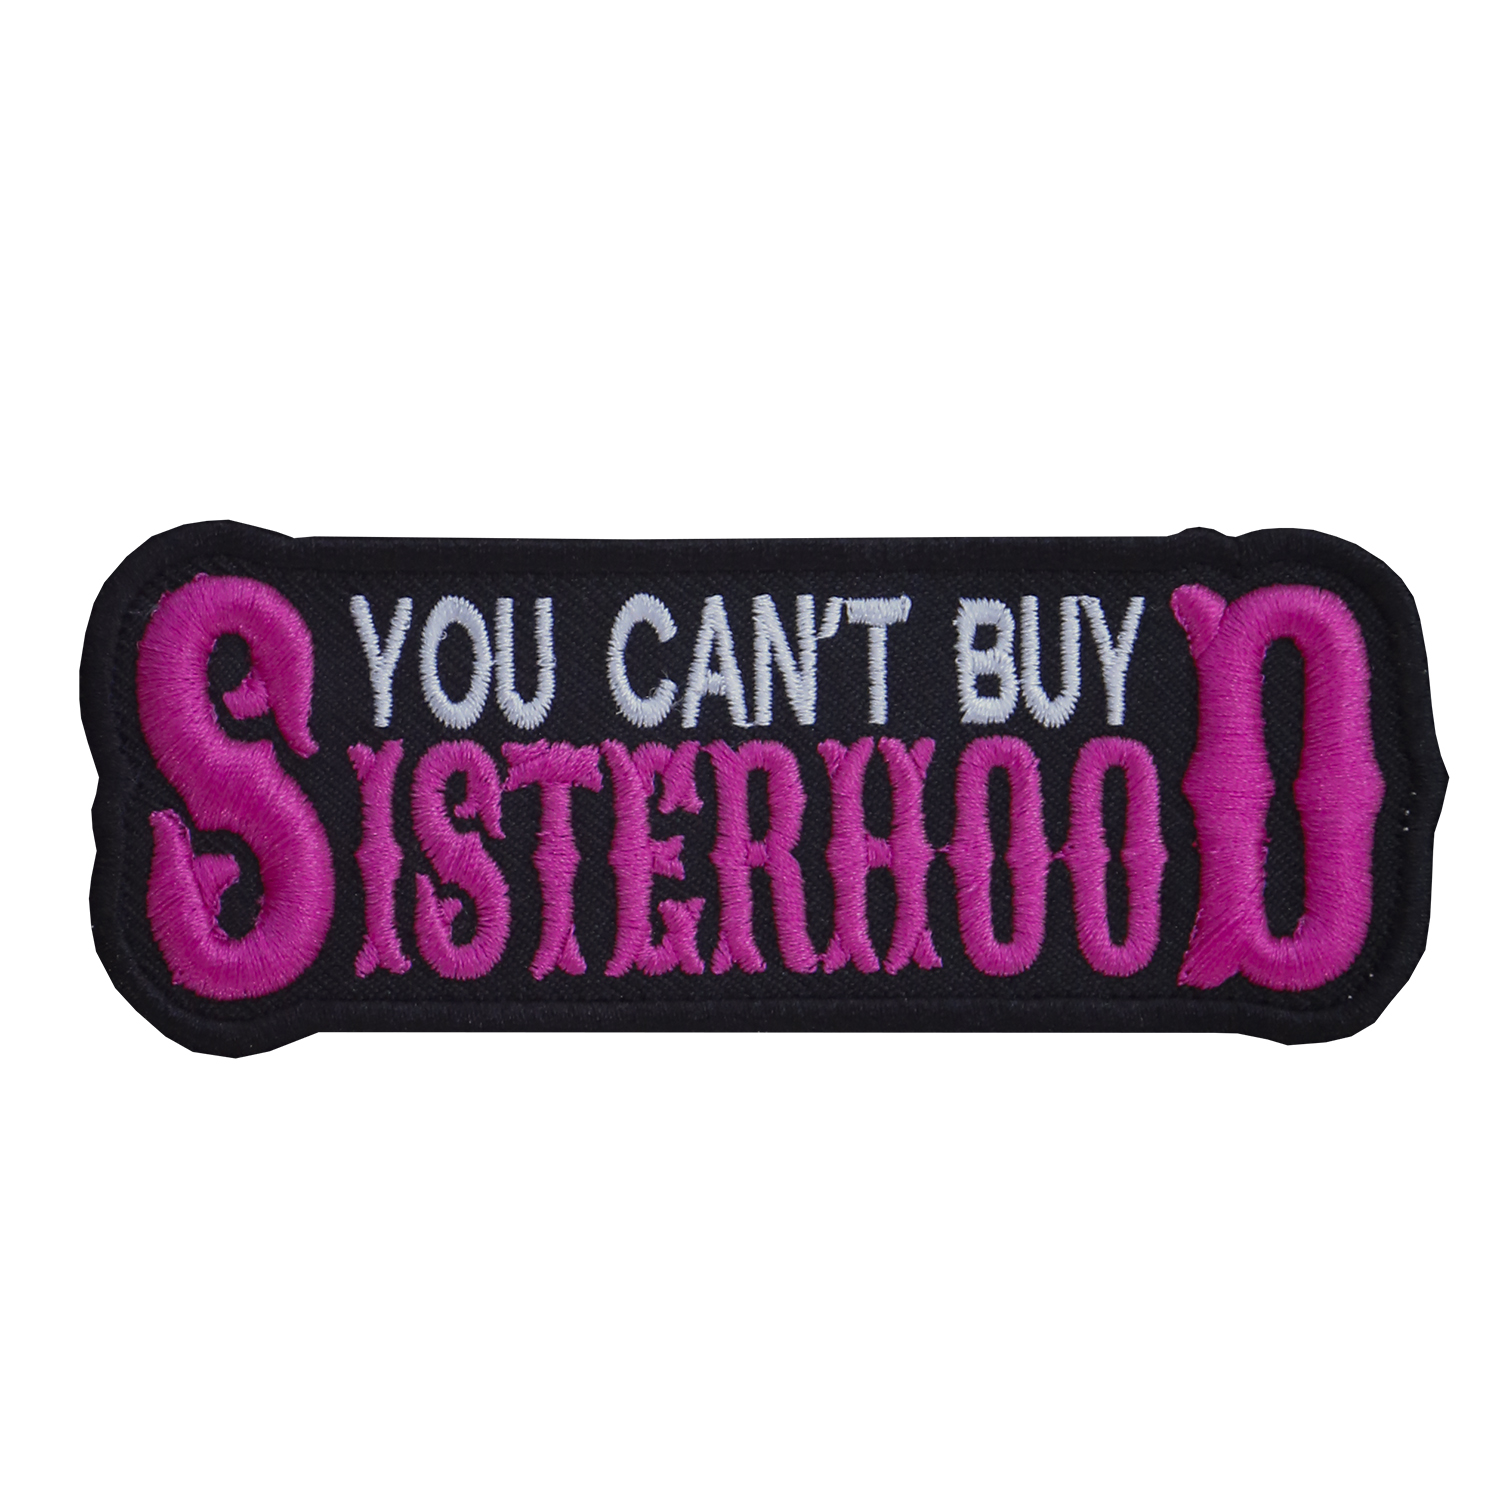 BUY SISTERHOOD